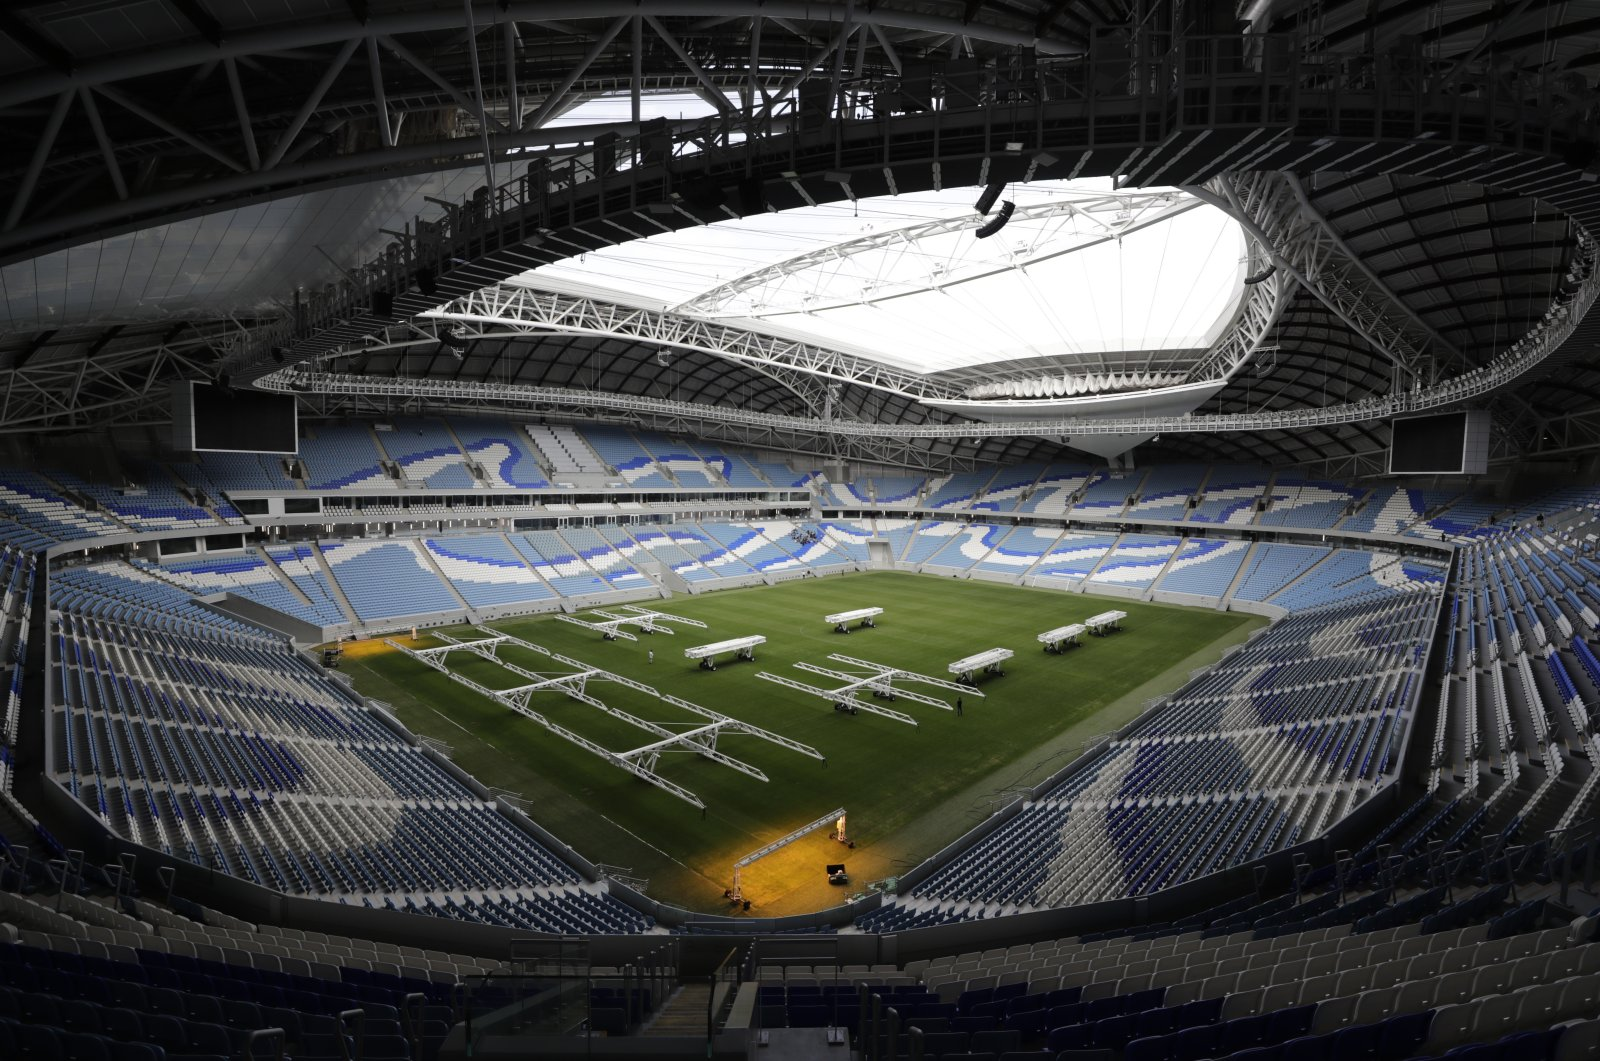 A view of the Al Janoub Stadium, one of the 2022 World Cup stadiums, in Doha, Qatar, Dec. 16, 2019. (AP Photo)